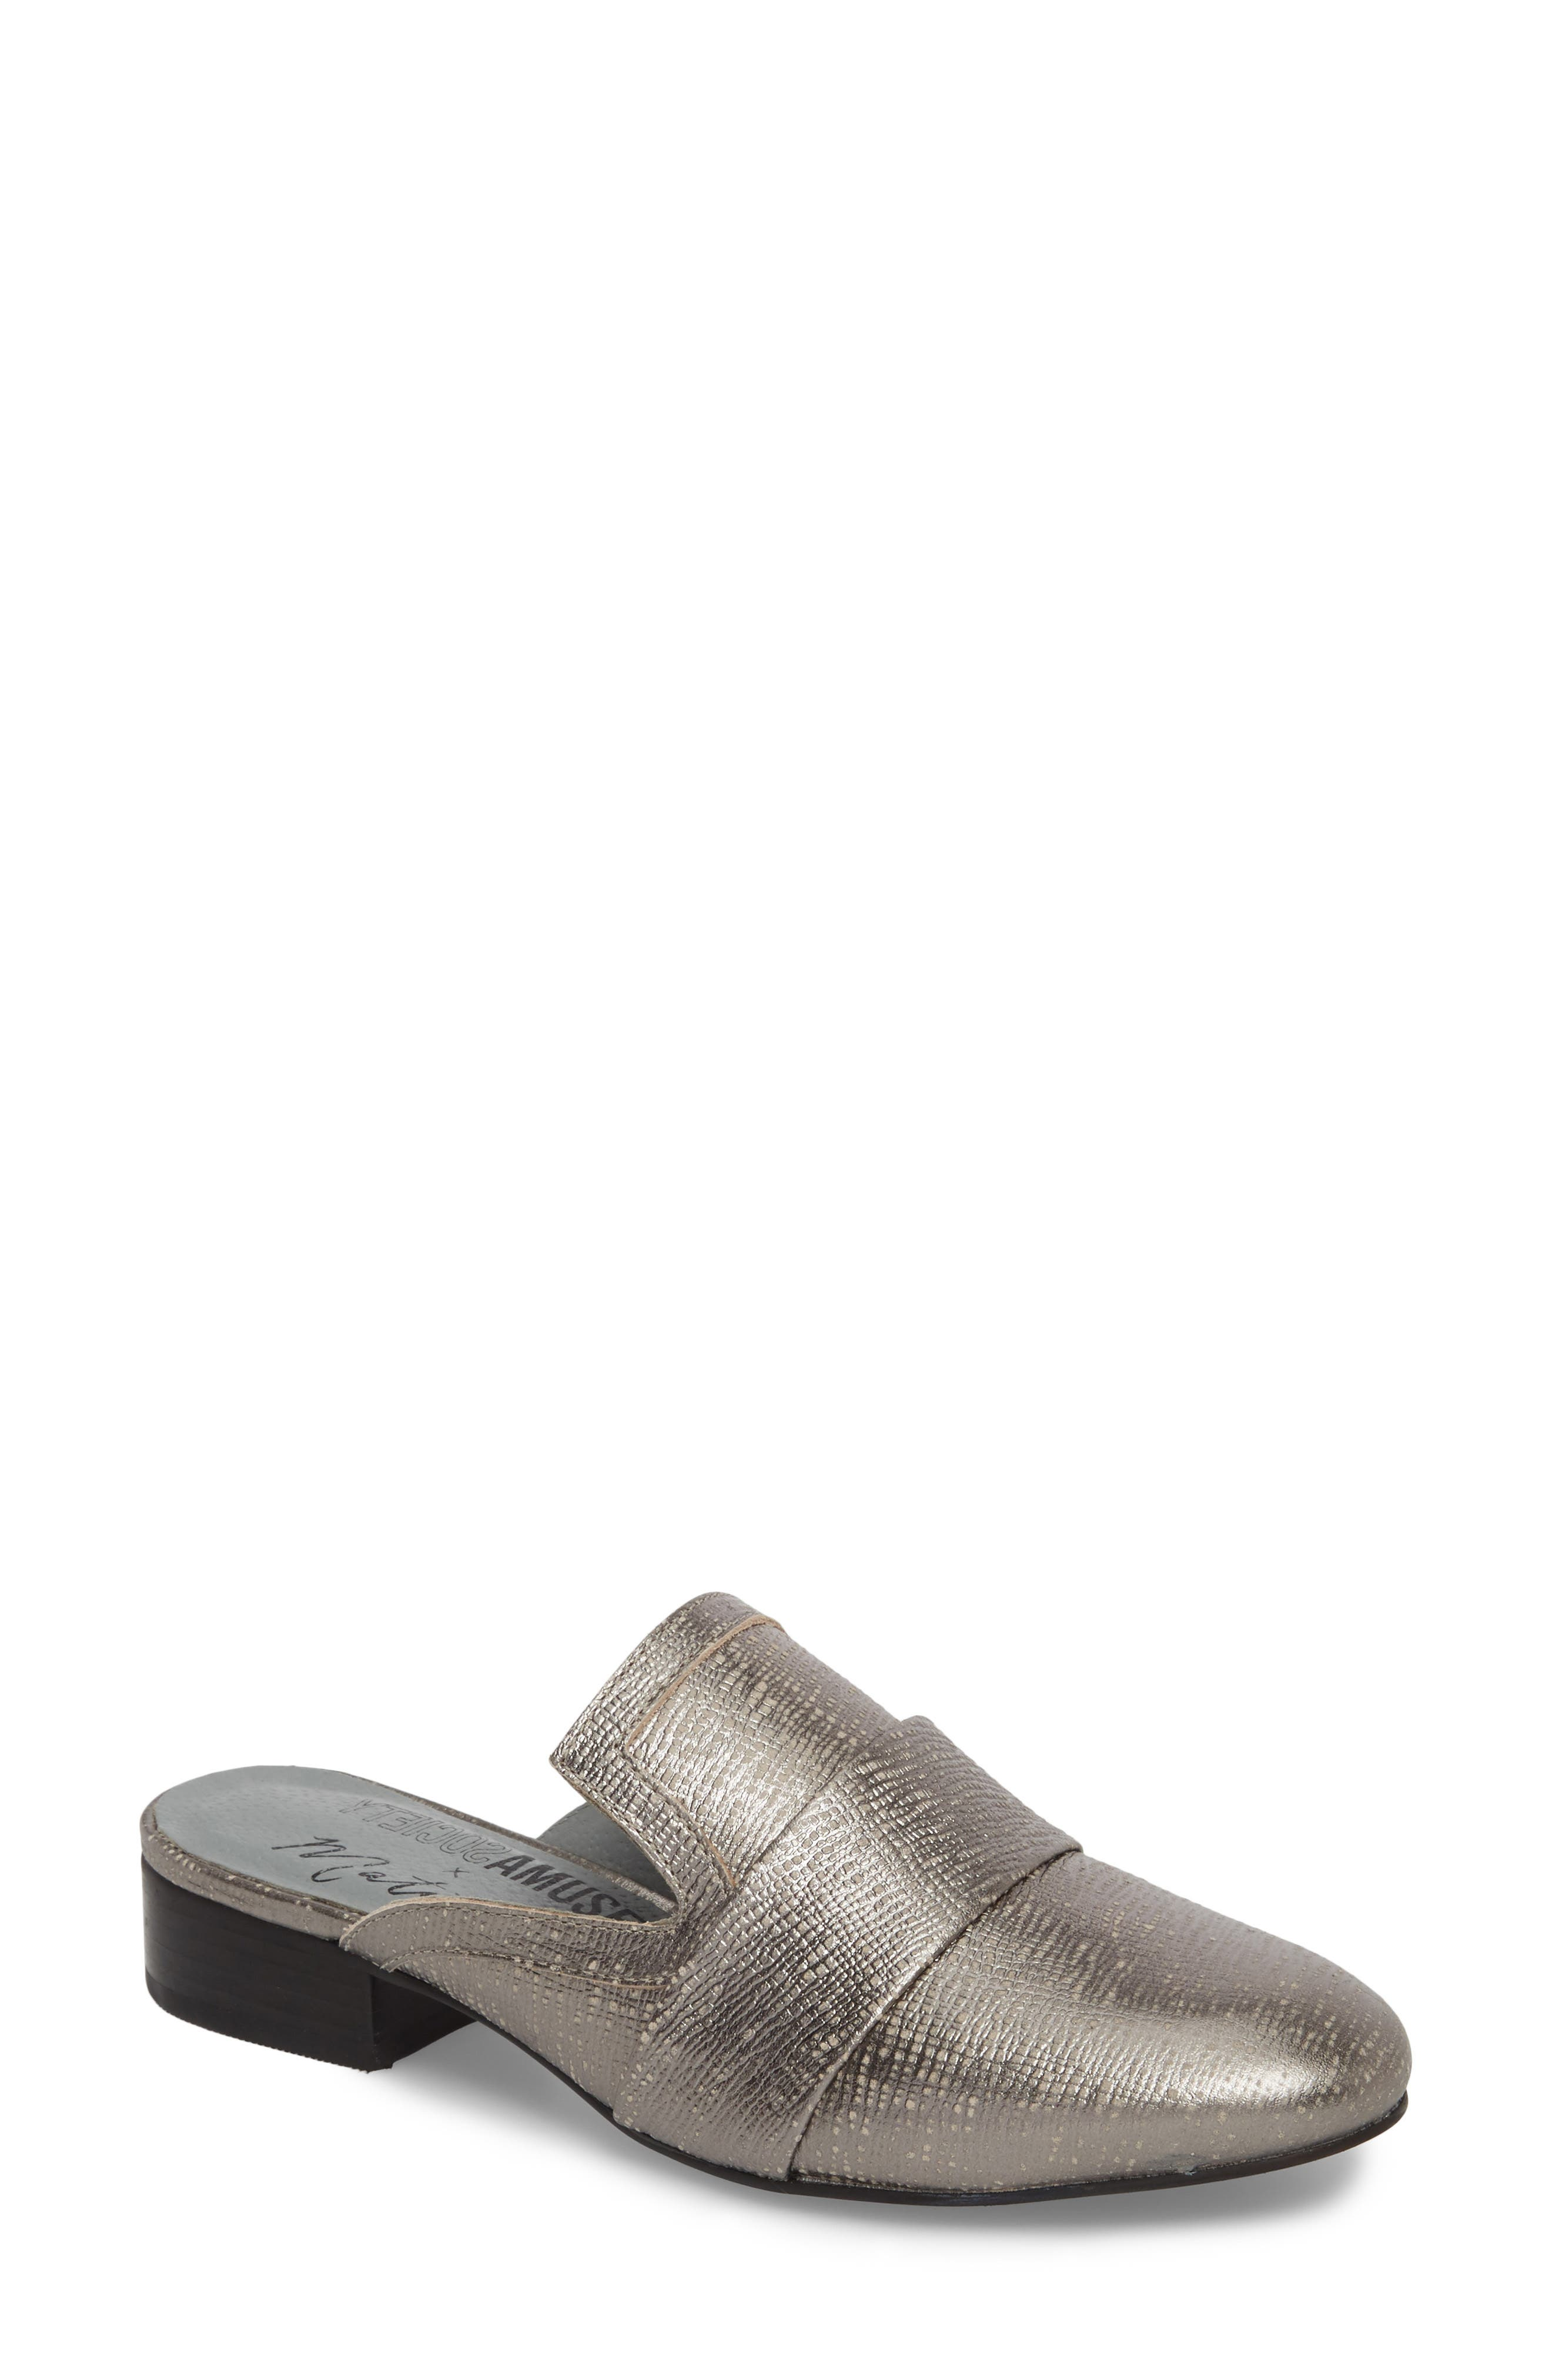 MATISSE Amuse Society x Matisse Le Bella Loafer Mule, Main, color, 040